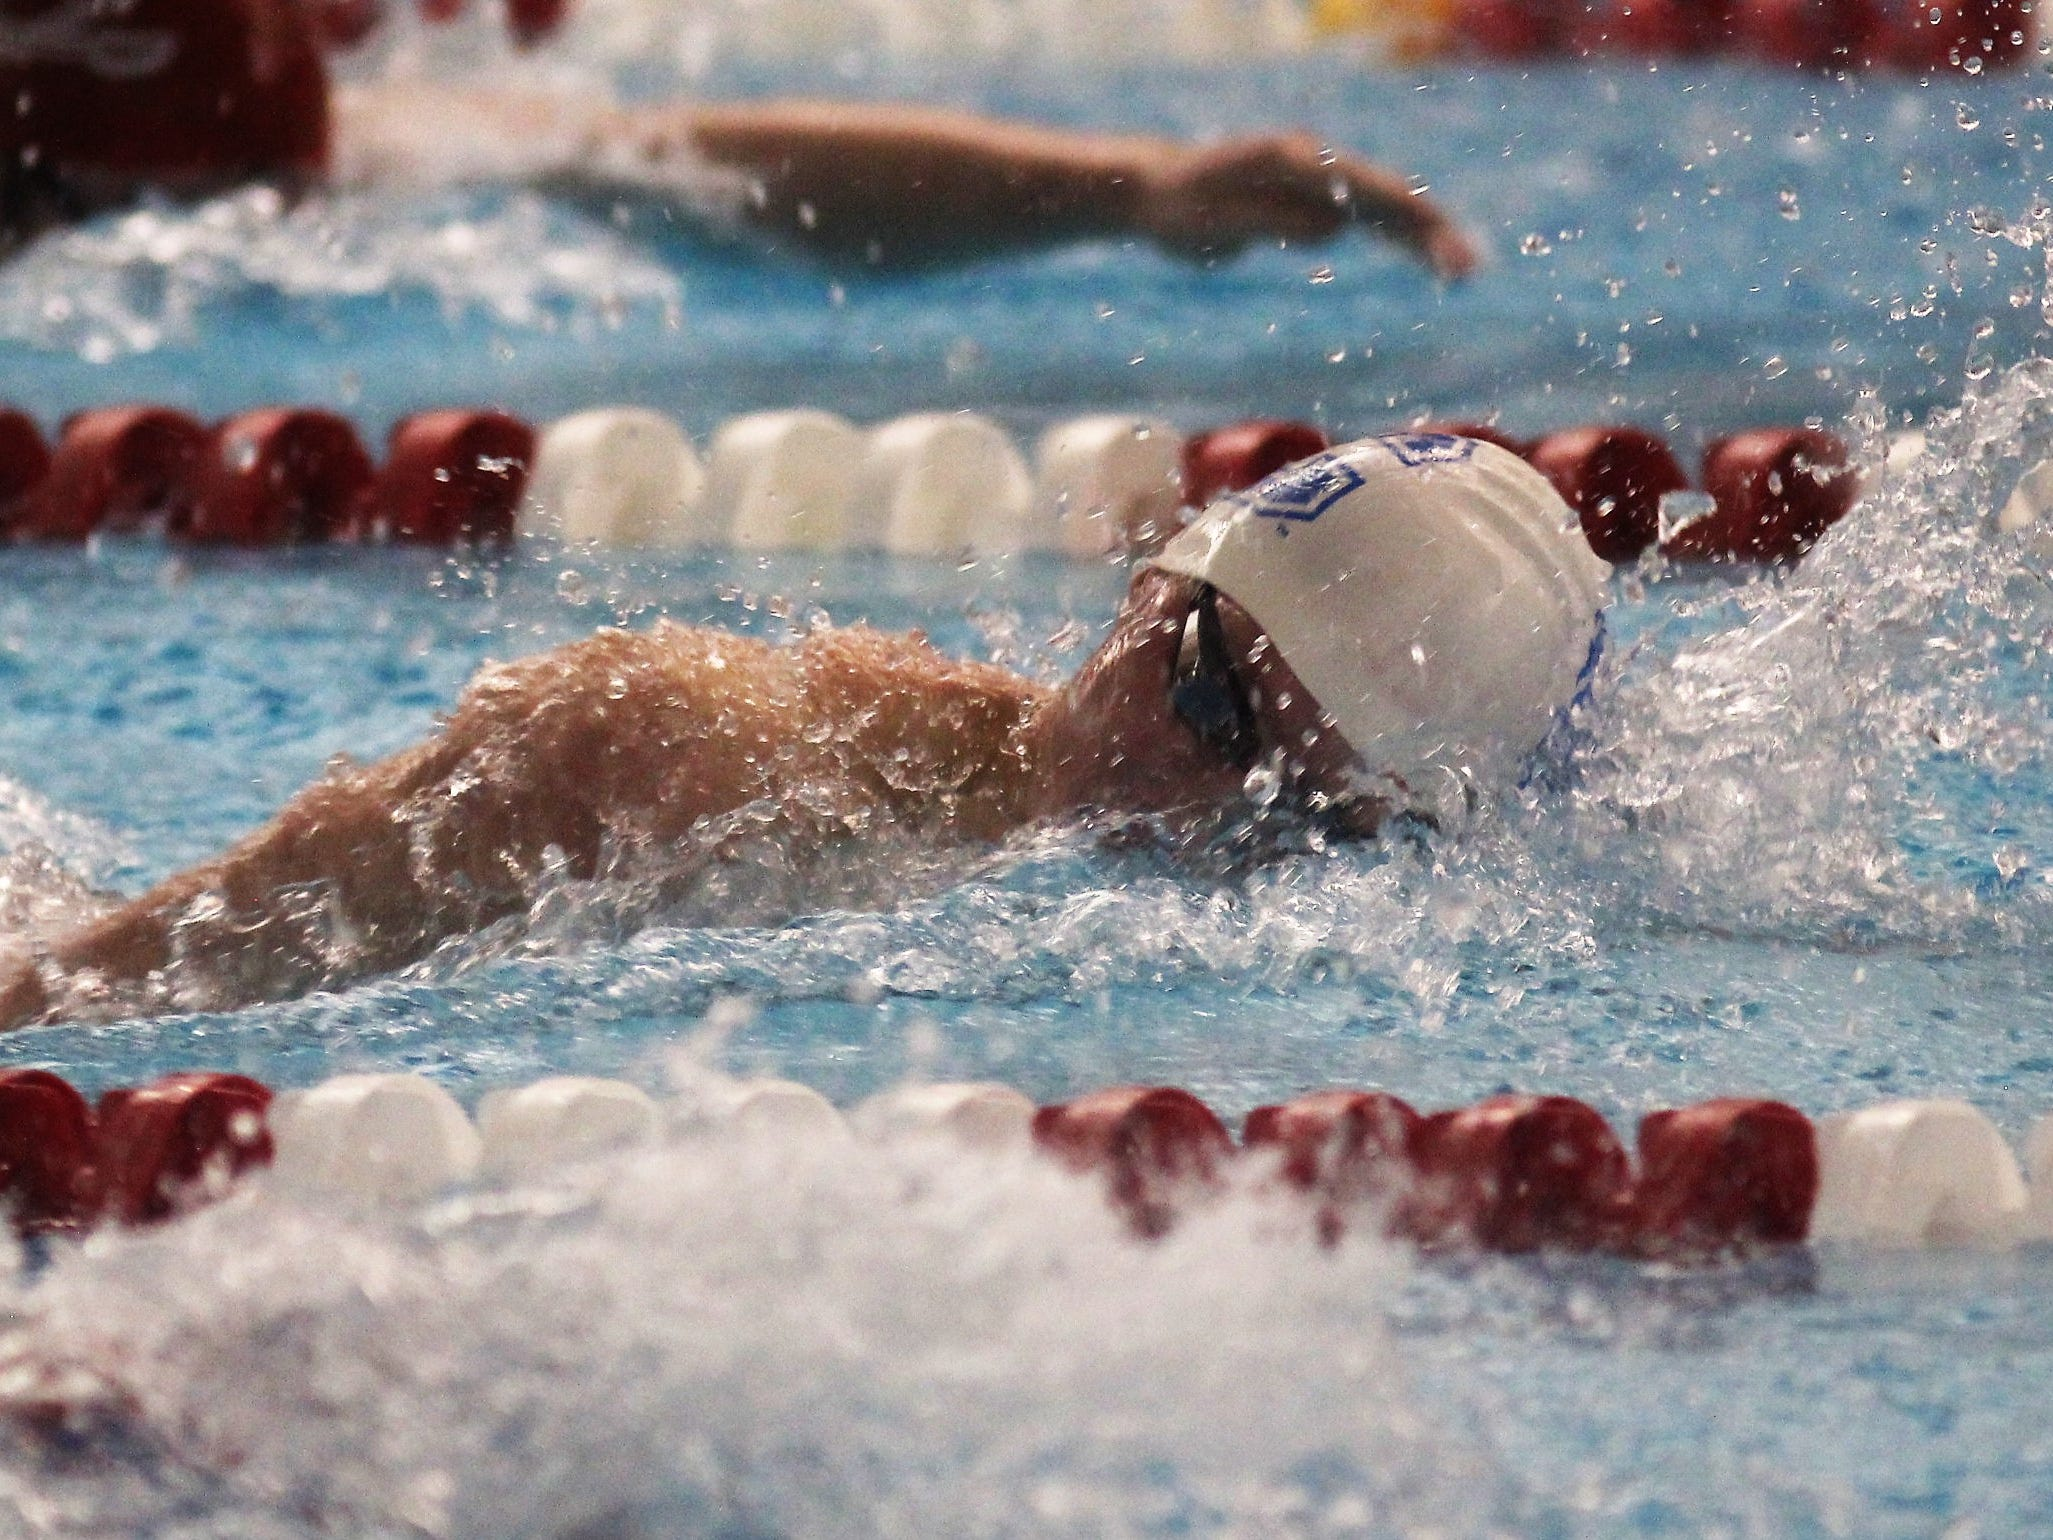 CovCath senior Patrick Merse in the 200 freestyle during the KHSAA state boys swimming and diving championship Feb. 22, 2019 at the University of Louisville.